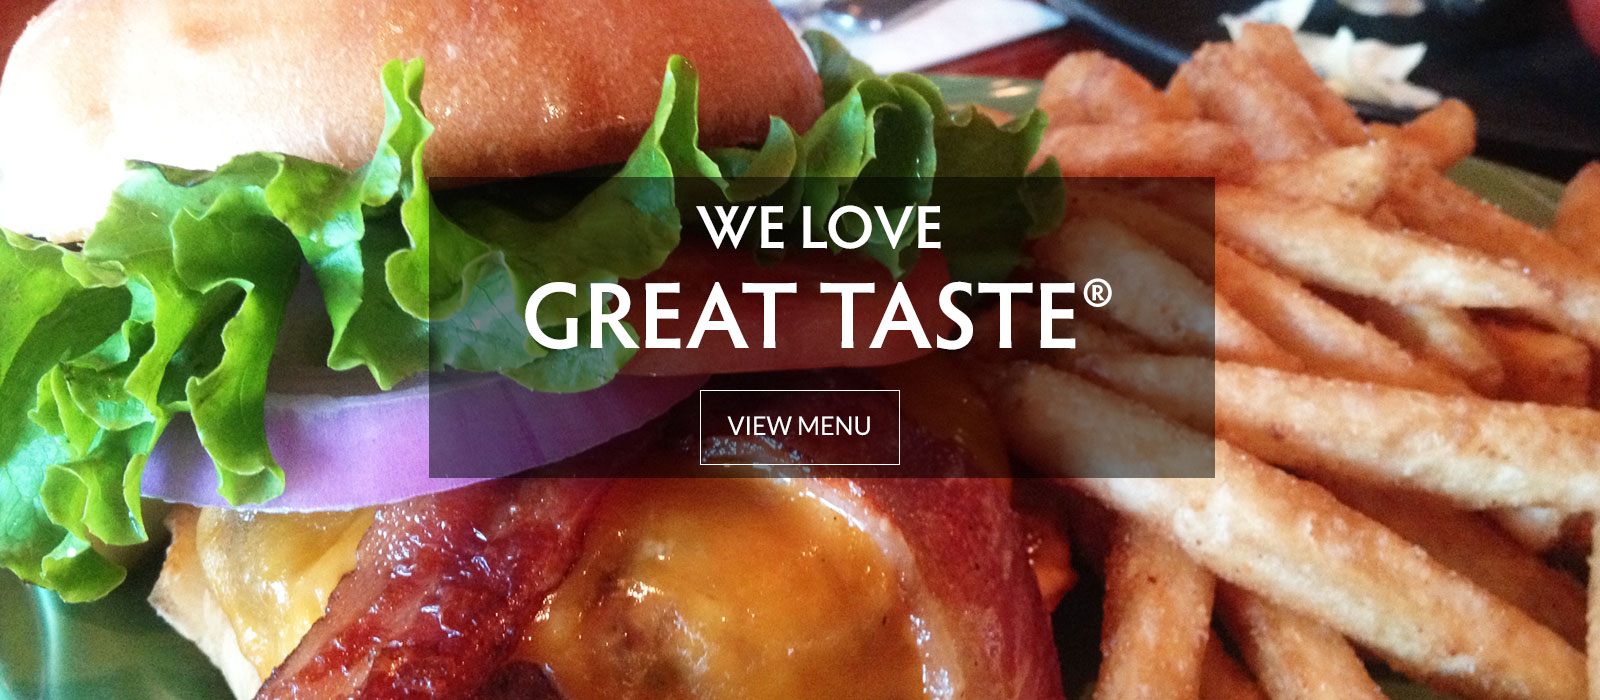 WE LOVE GREAT TASTE®